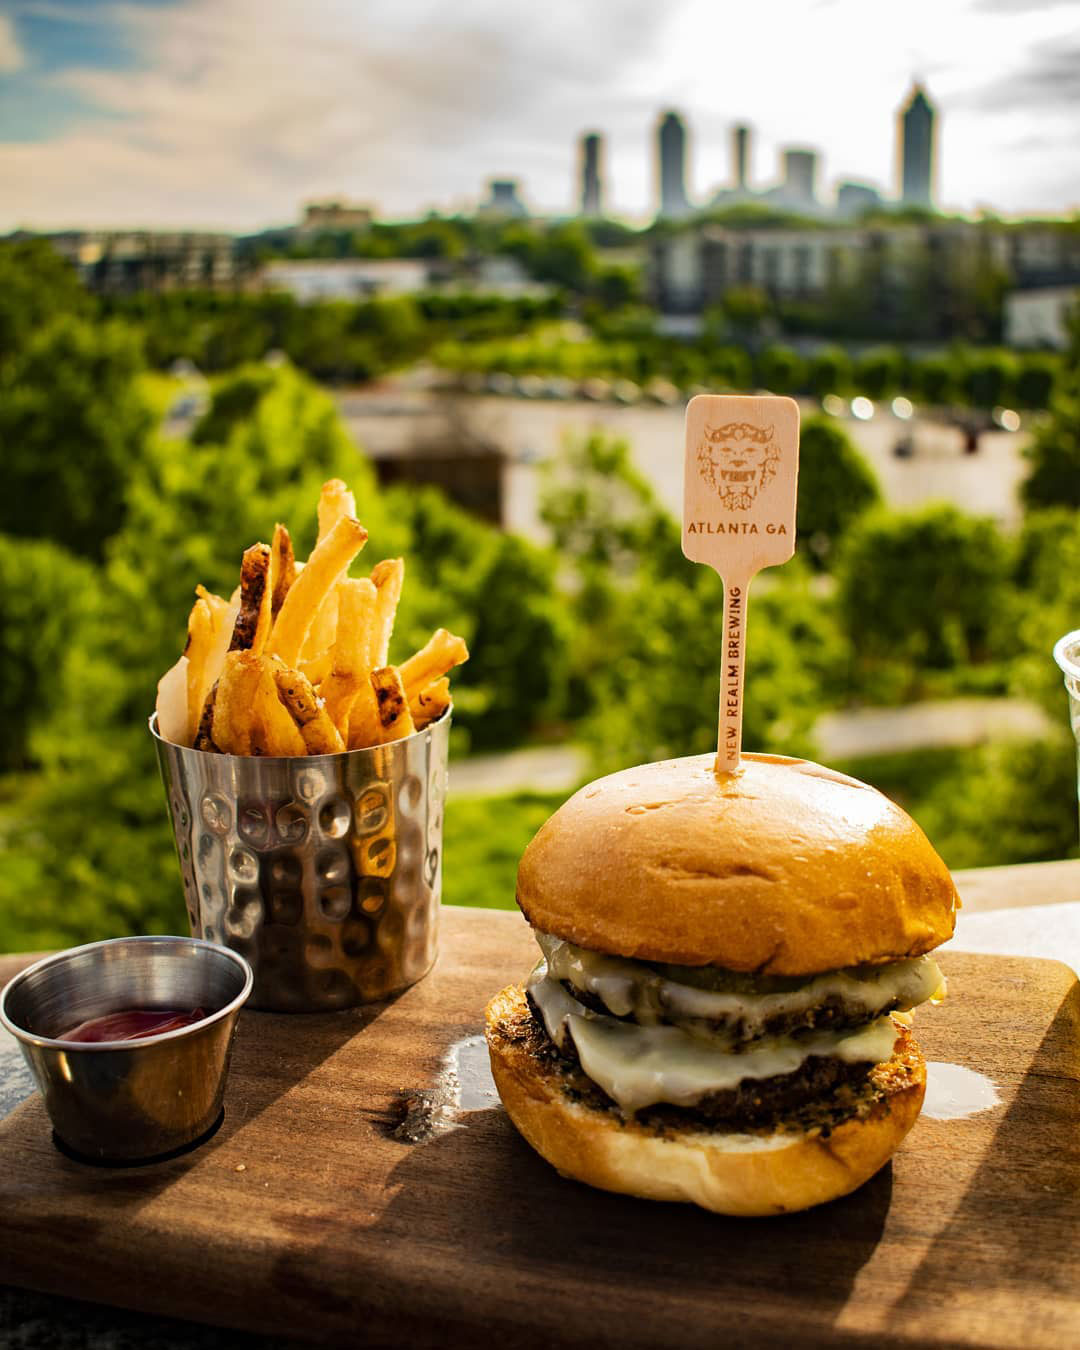 Burger and fries at New Realm Brewery overlooking the Atlanta BeltLine. Photo by @wizardgreencraft